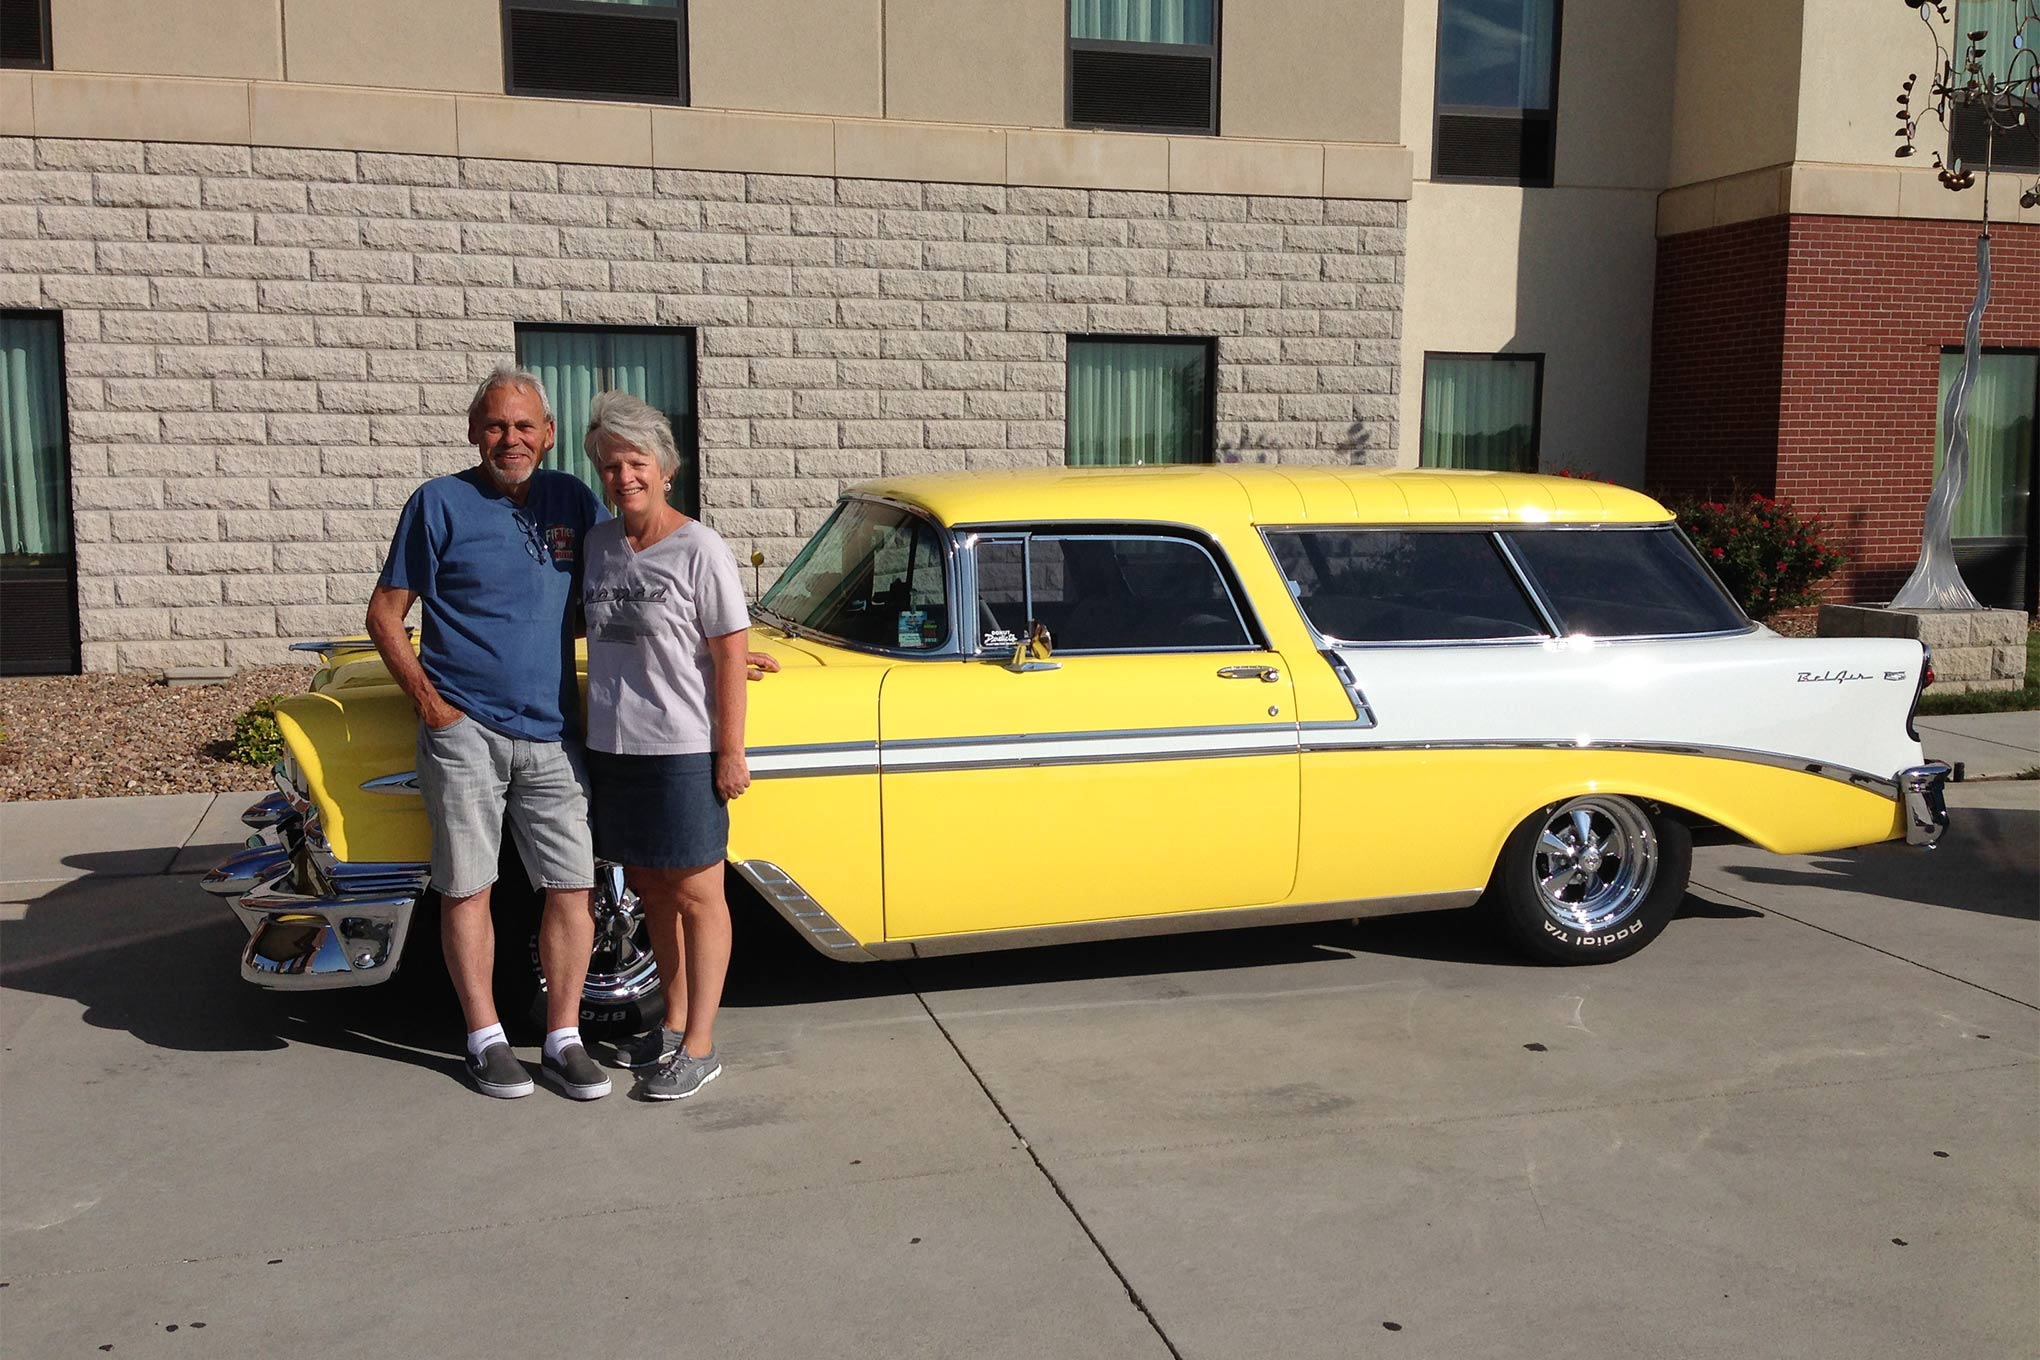 Dana and J.D. Stevens are from Lakeside, CA. They drove their 1956 Chevy Nomad. Dana and J.D. are the first repeat participants as they also met the Challenge in 2012.